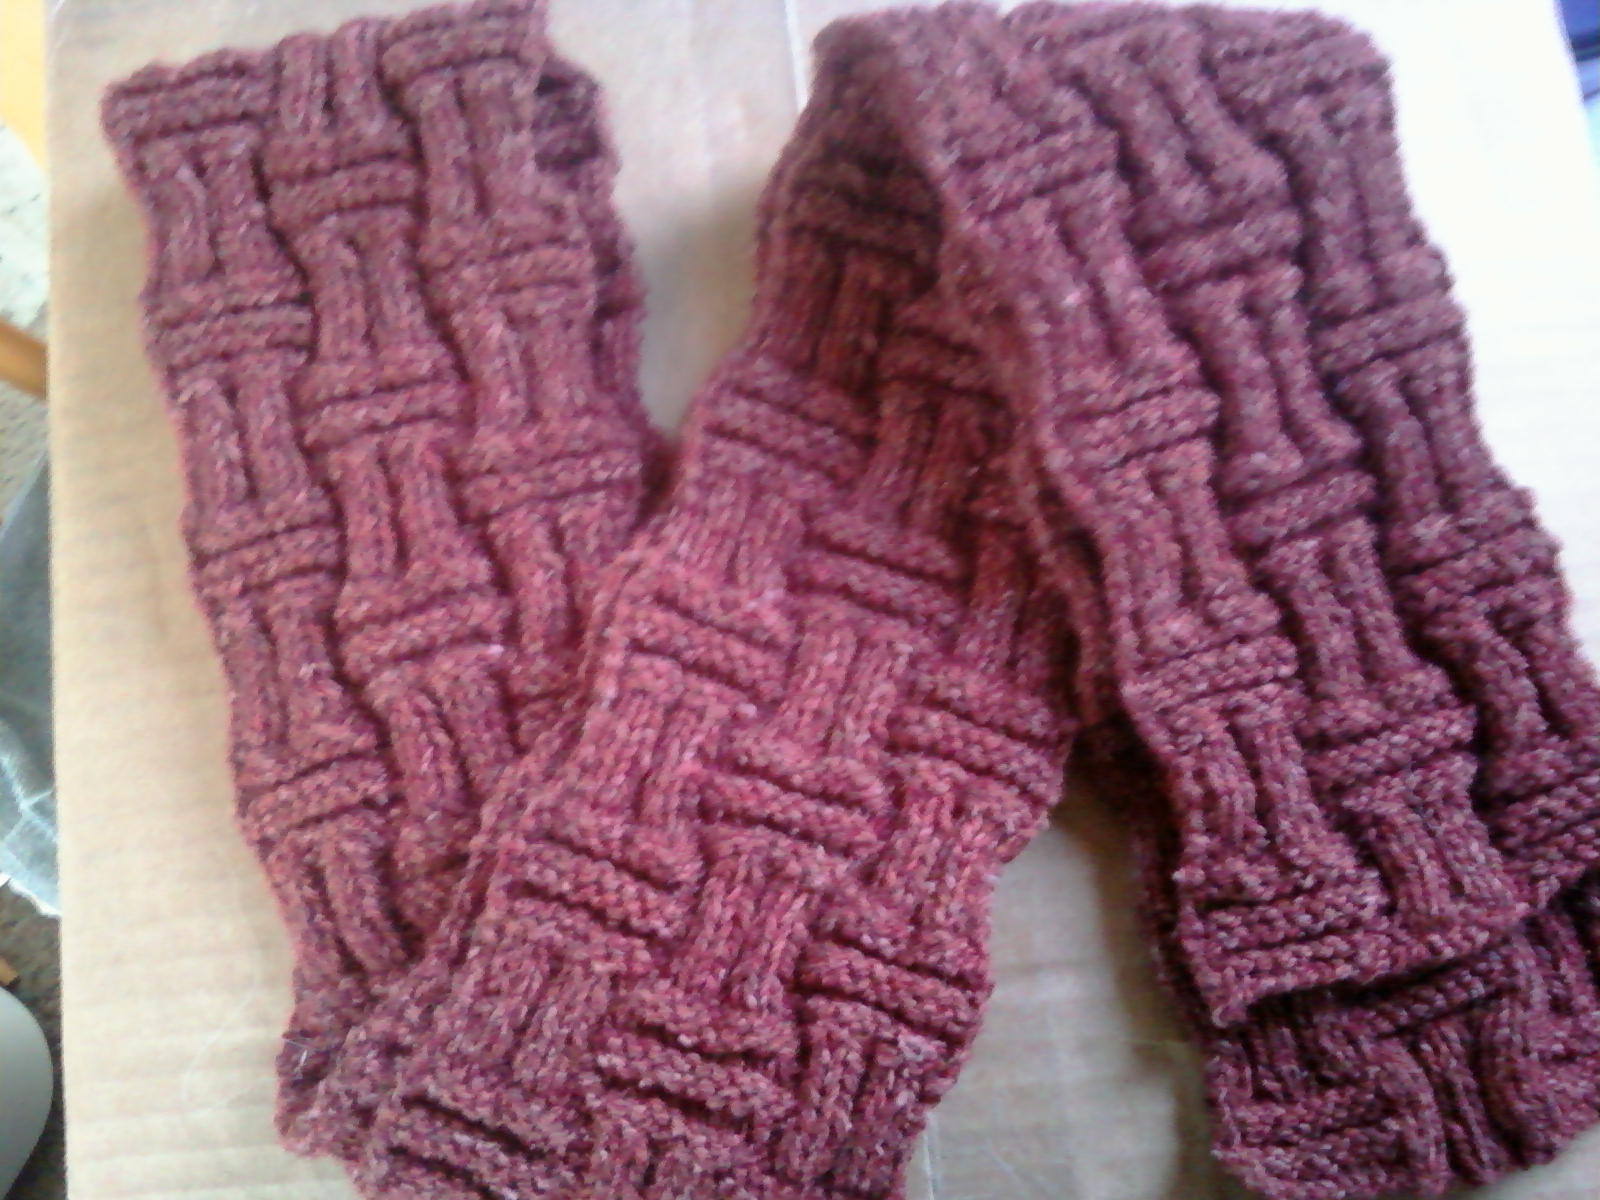 Knitting Pattern Bacon Scarf : Bacon and Eggs : Seed Starting and Hand-Knit Scarf